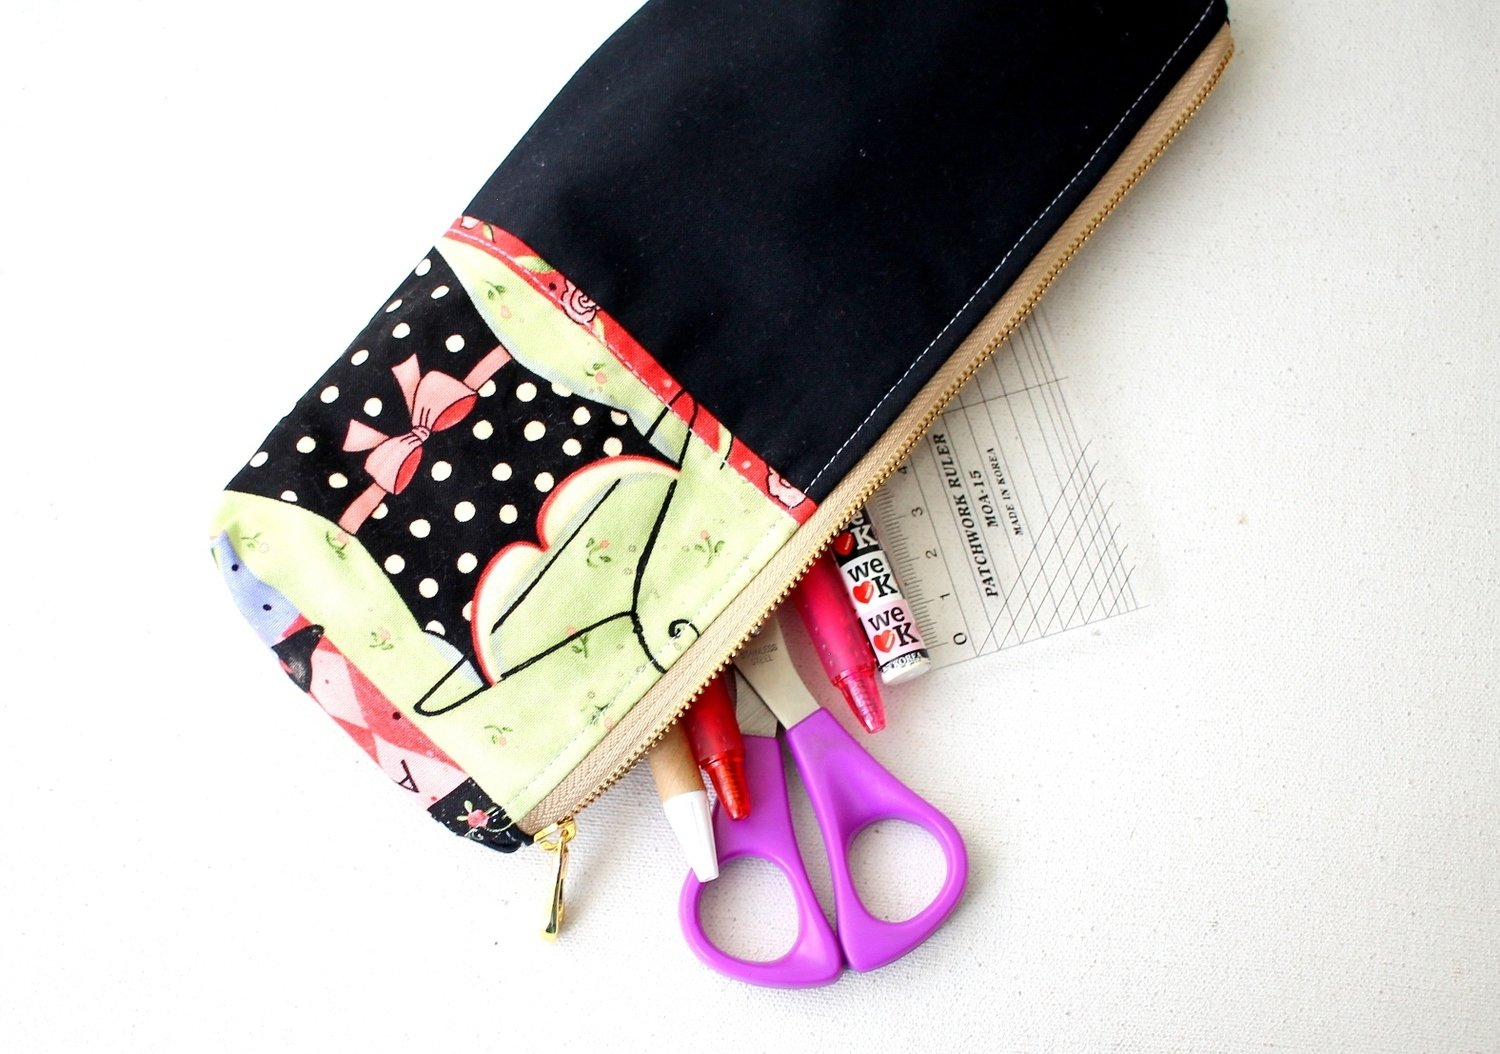 Handmade Little Black Dress Zipper Pouch - One of a kind - Medium Size